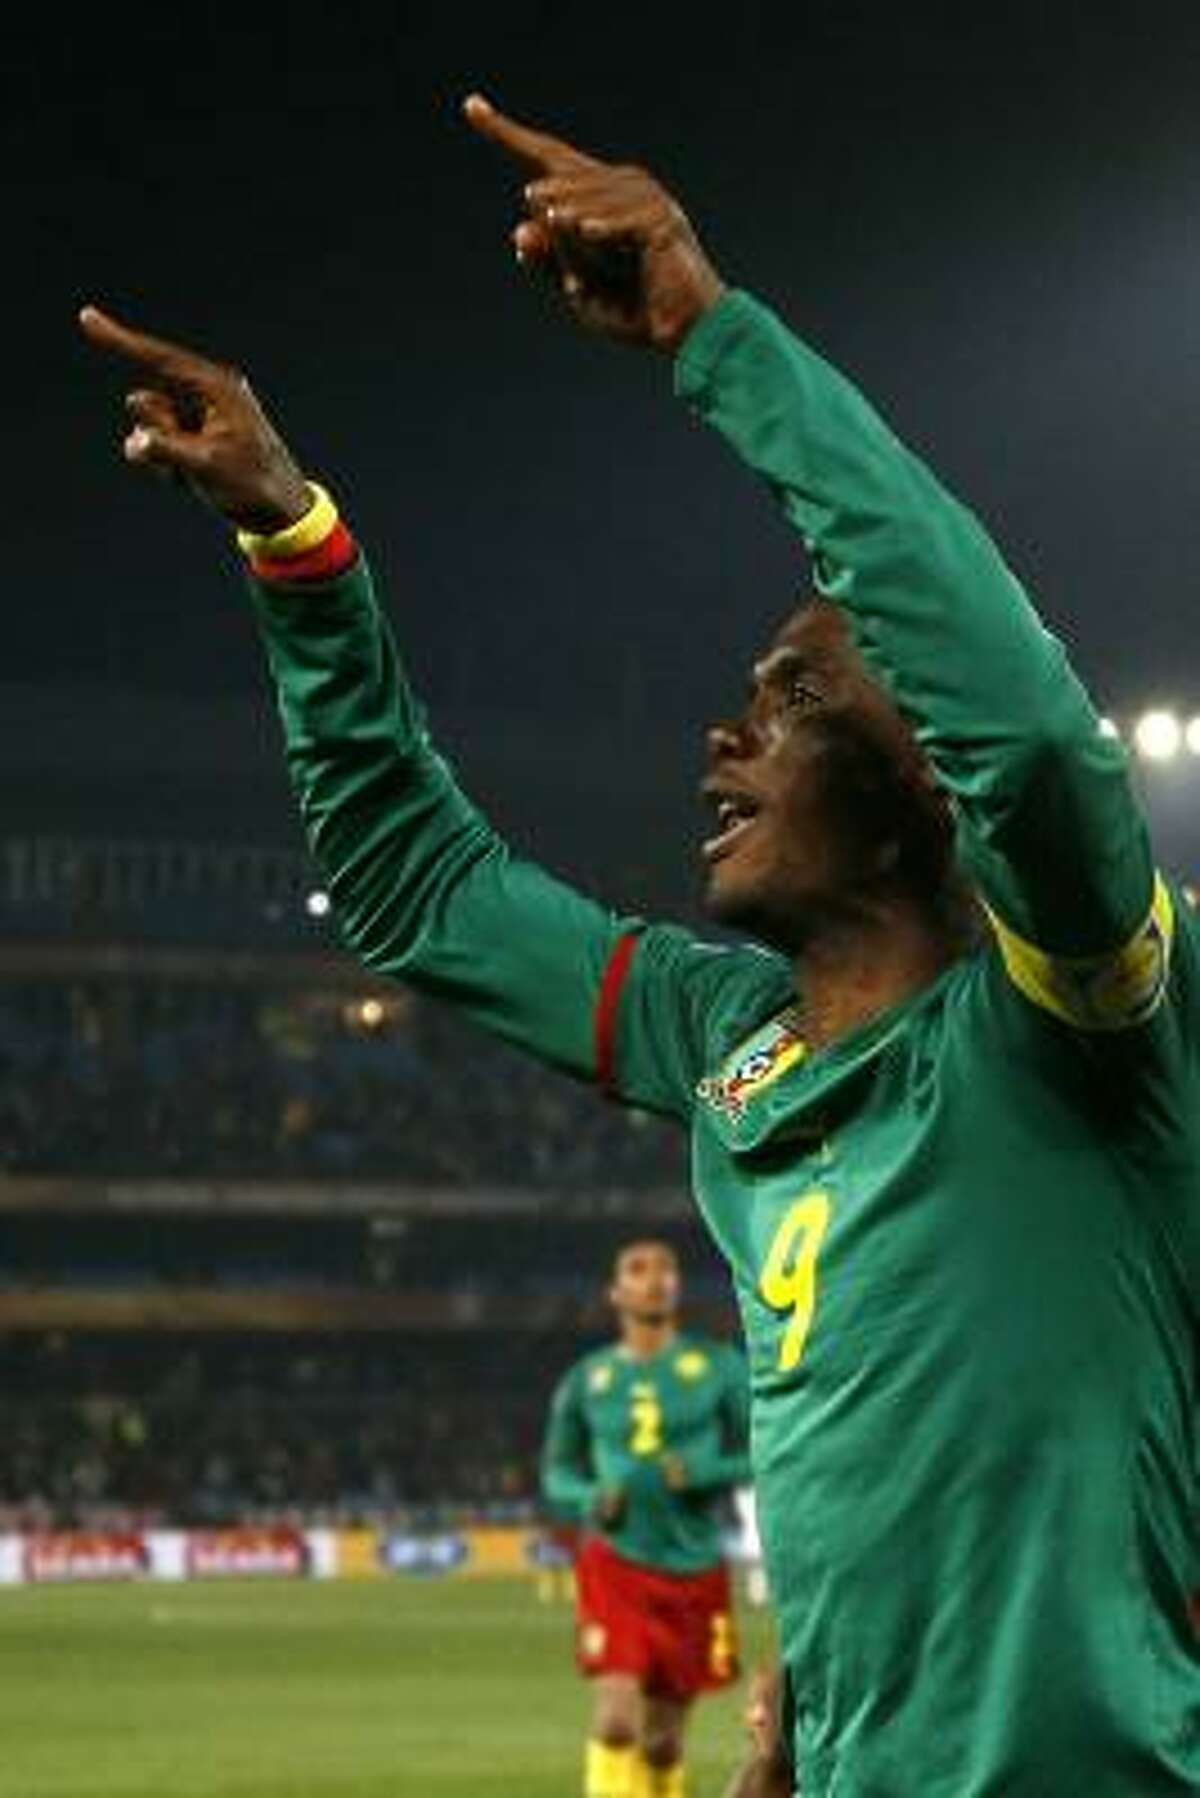 Cameroon's striker Samuel Eto'o celebrates after scoring the opening goal during the Group E first round 2010 World Cup football match Cameroon vs. Denmark on June 19, 2010 at Loftus Verfeld stadium in Tshwane/Pretoria. NO PUSH TO MOBILE / MOBILE USE SOLELY WITHIN EDITORIAL ARTICLE - AFP PHOTO / THOMAS COEX (Photo credit should read THOMAS COEX/AFP/Getty Images)